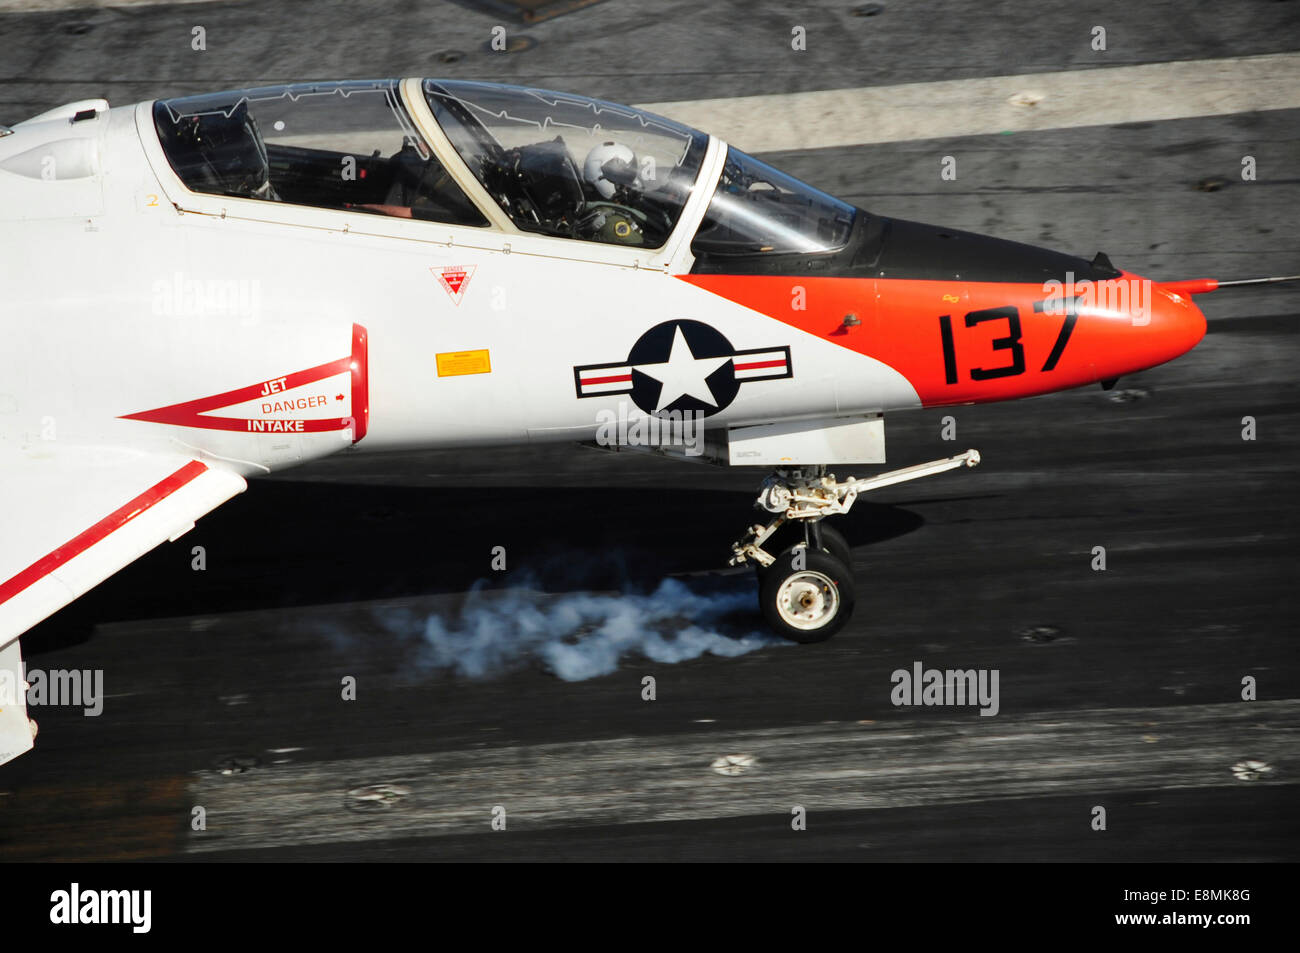 Atlantic Ocean, December 10, 2013 - A T-45C Goshawk lands on the flight deck of the aircraft carrier USS Theodore - Stock Image